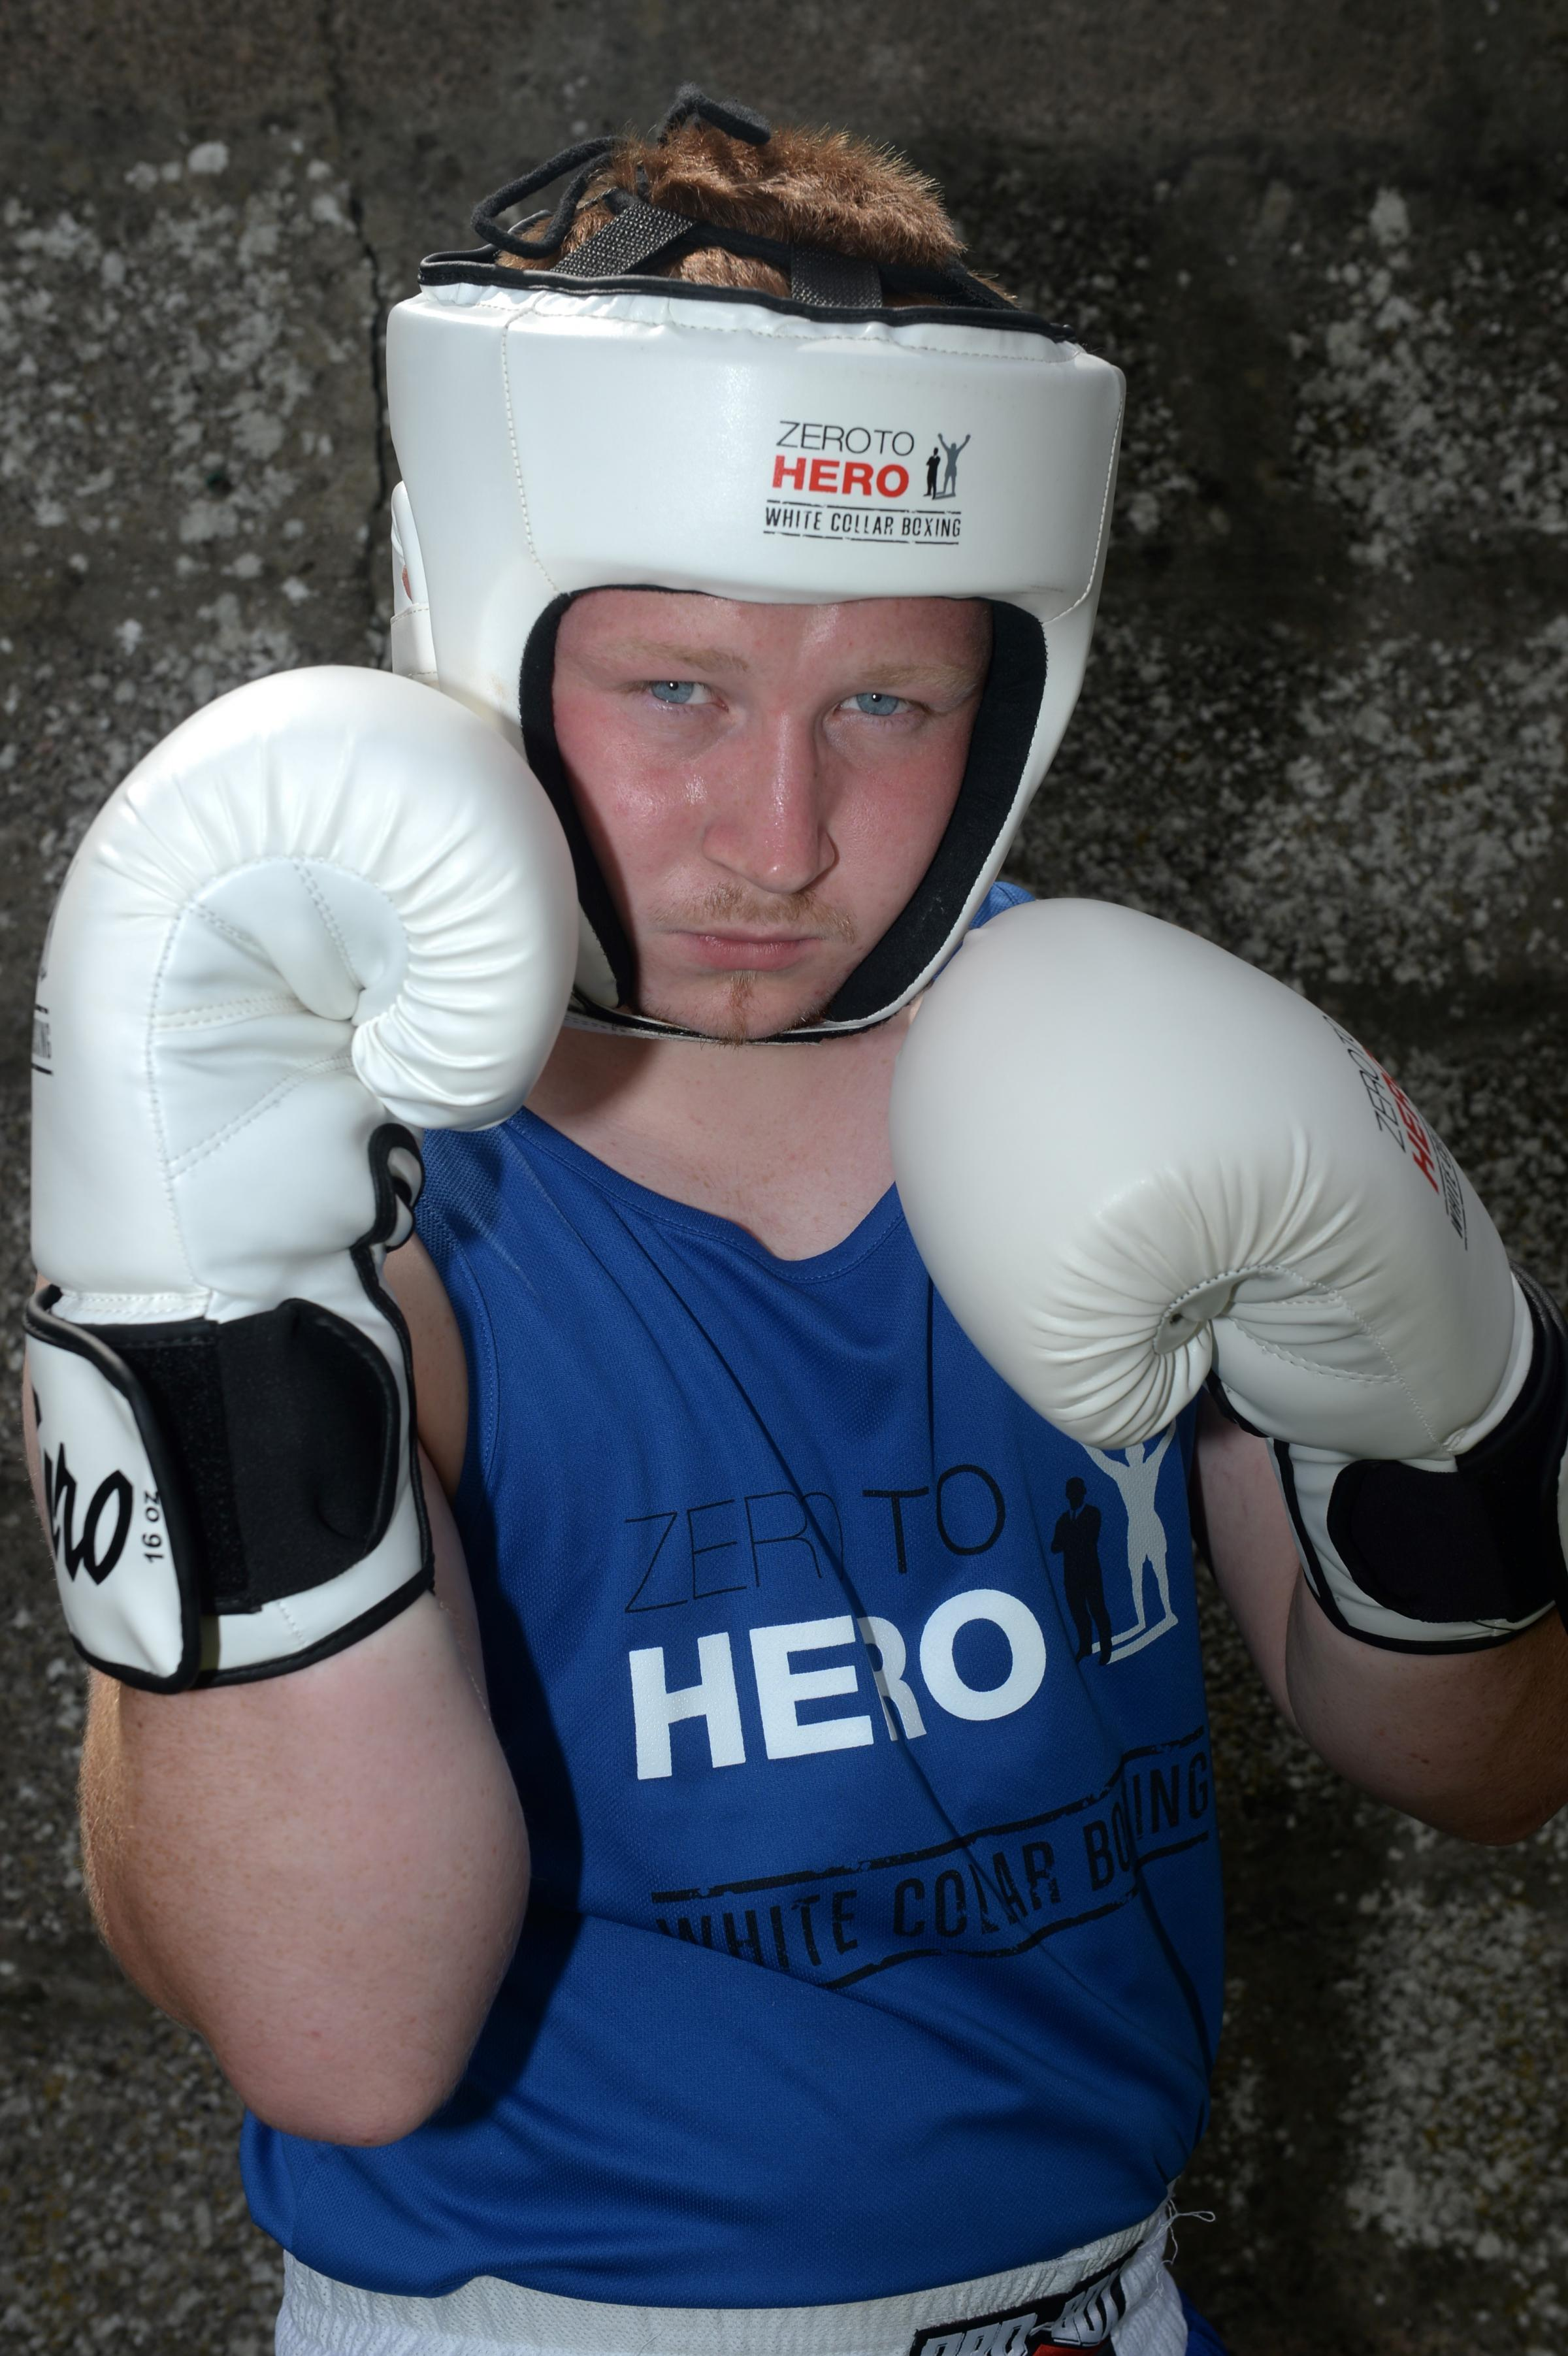 Chepstow boxer raises £560 after injury